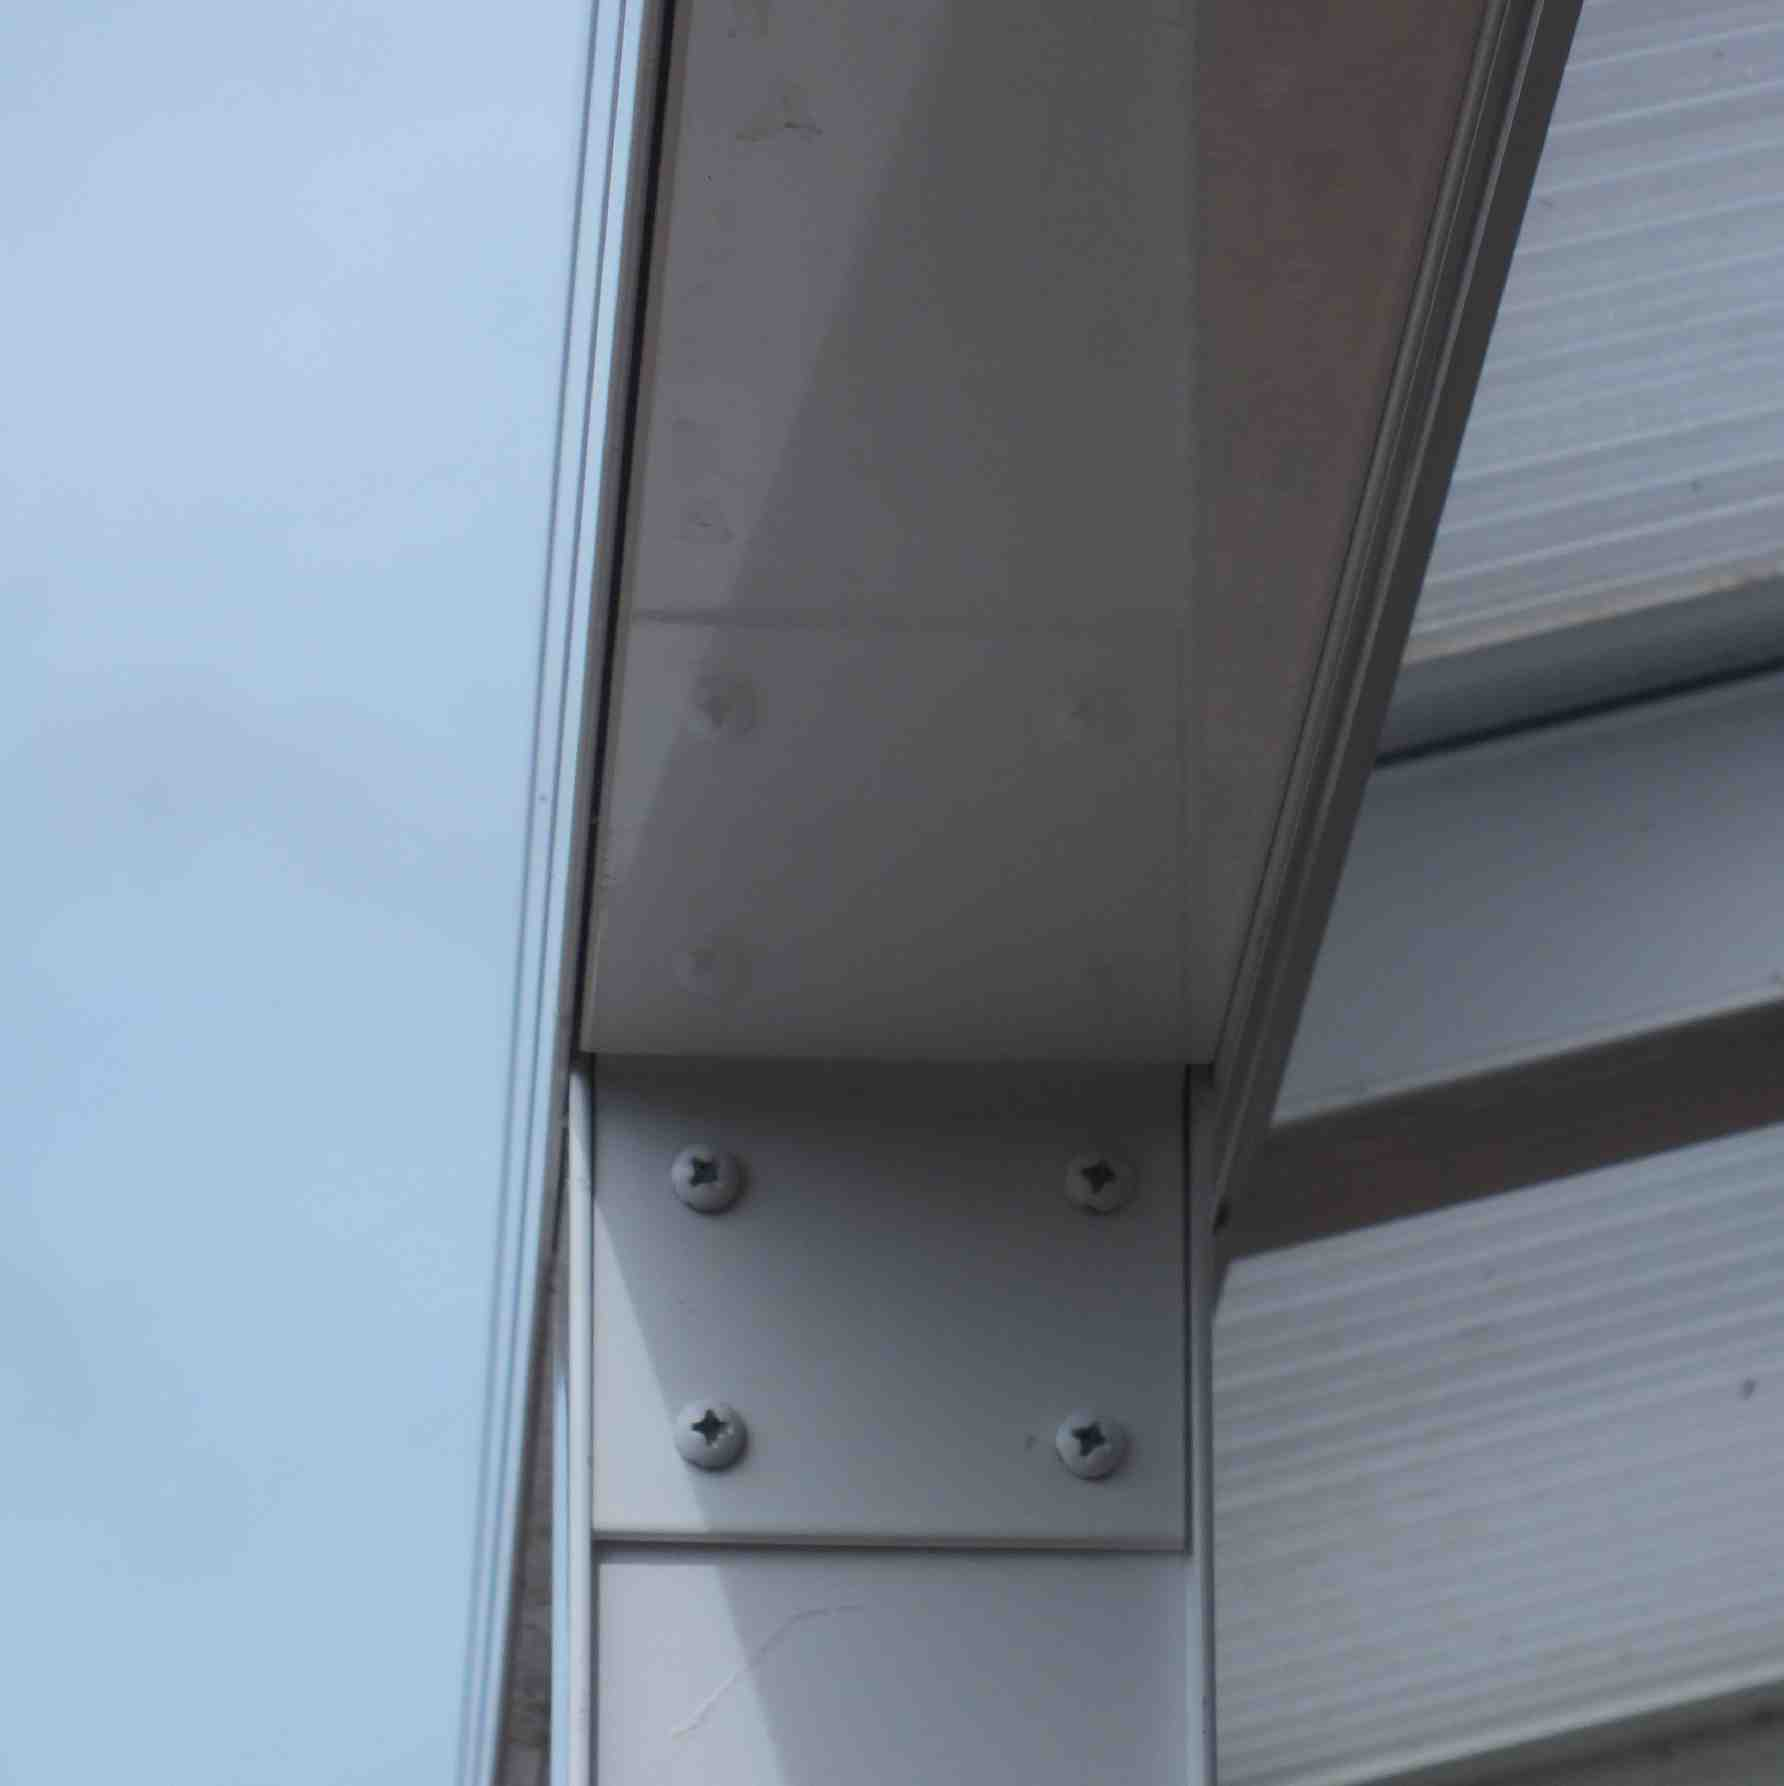 Affordable Omega Verandah with 6mm Glass Clear Plate Polycarbonate Glazing - 3.5m (W) x 3.5m (P), (3) Supporting Posts